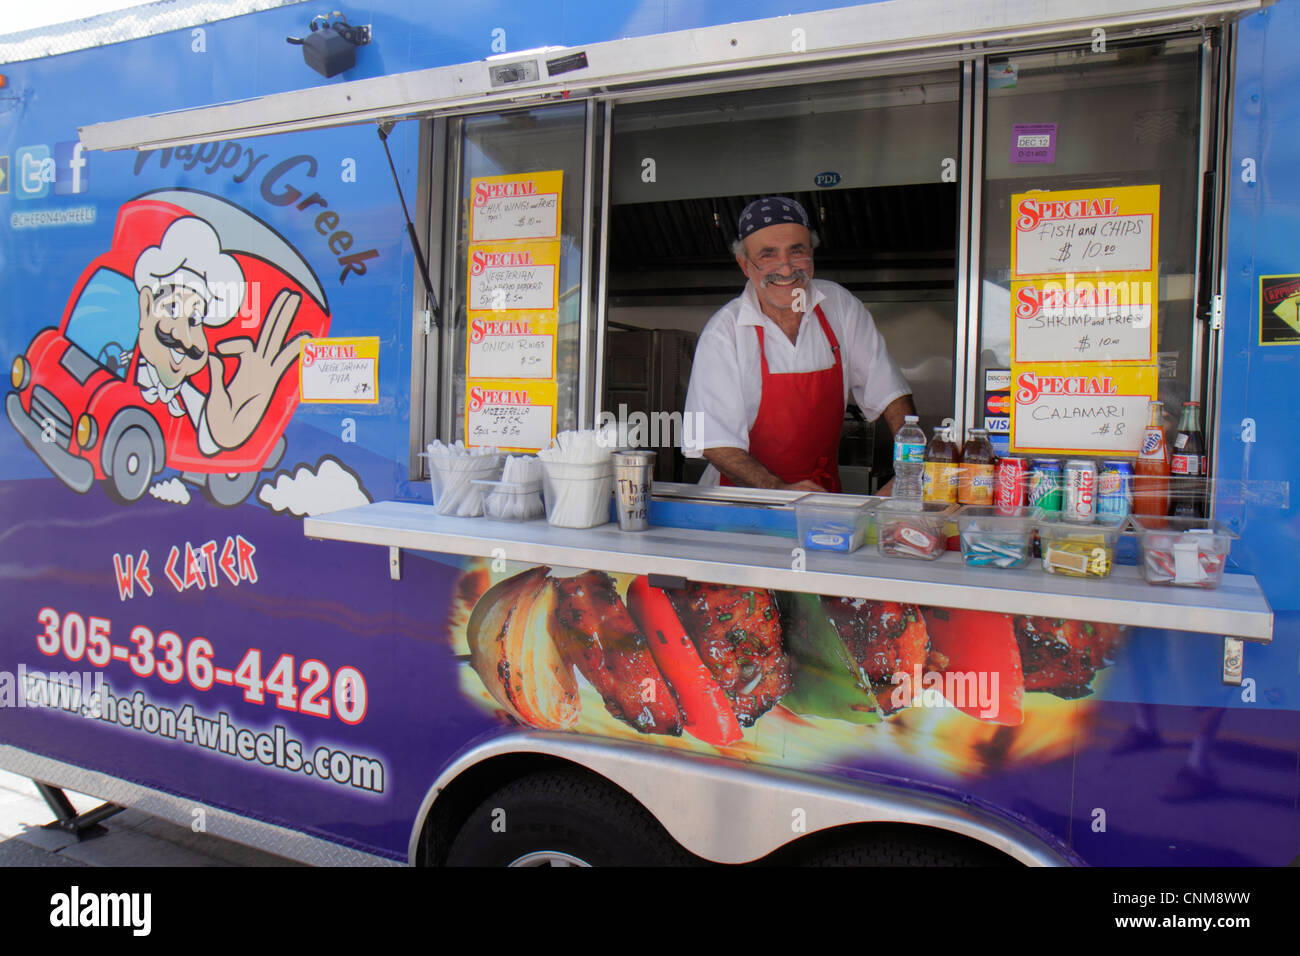 Traveling Food Truck Business